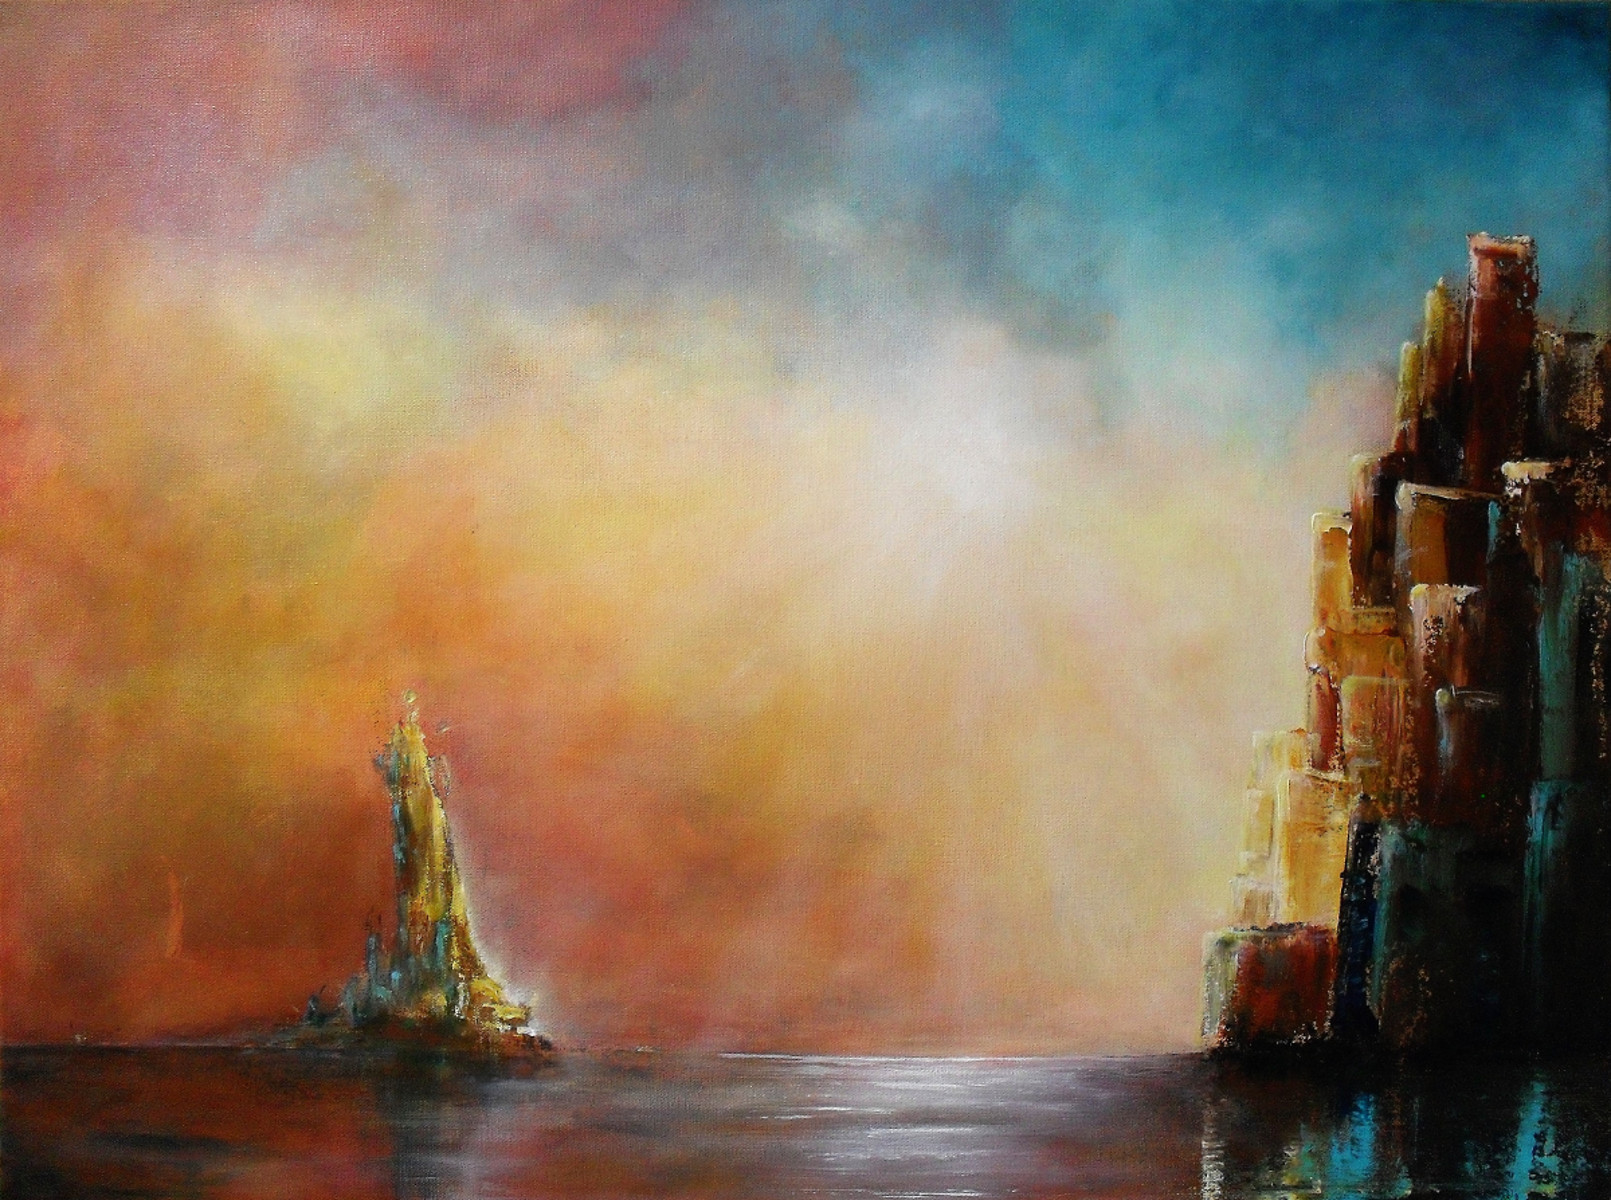 Standing Up, statue standing in the water next to a high city, the sunlight in the colourful sky gives the water a silvery shine. abstract painting oils and acrylics on canvas 80x60cm.